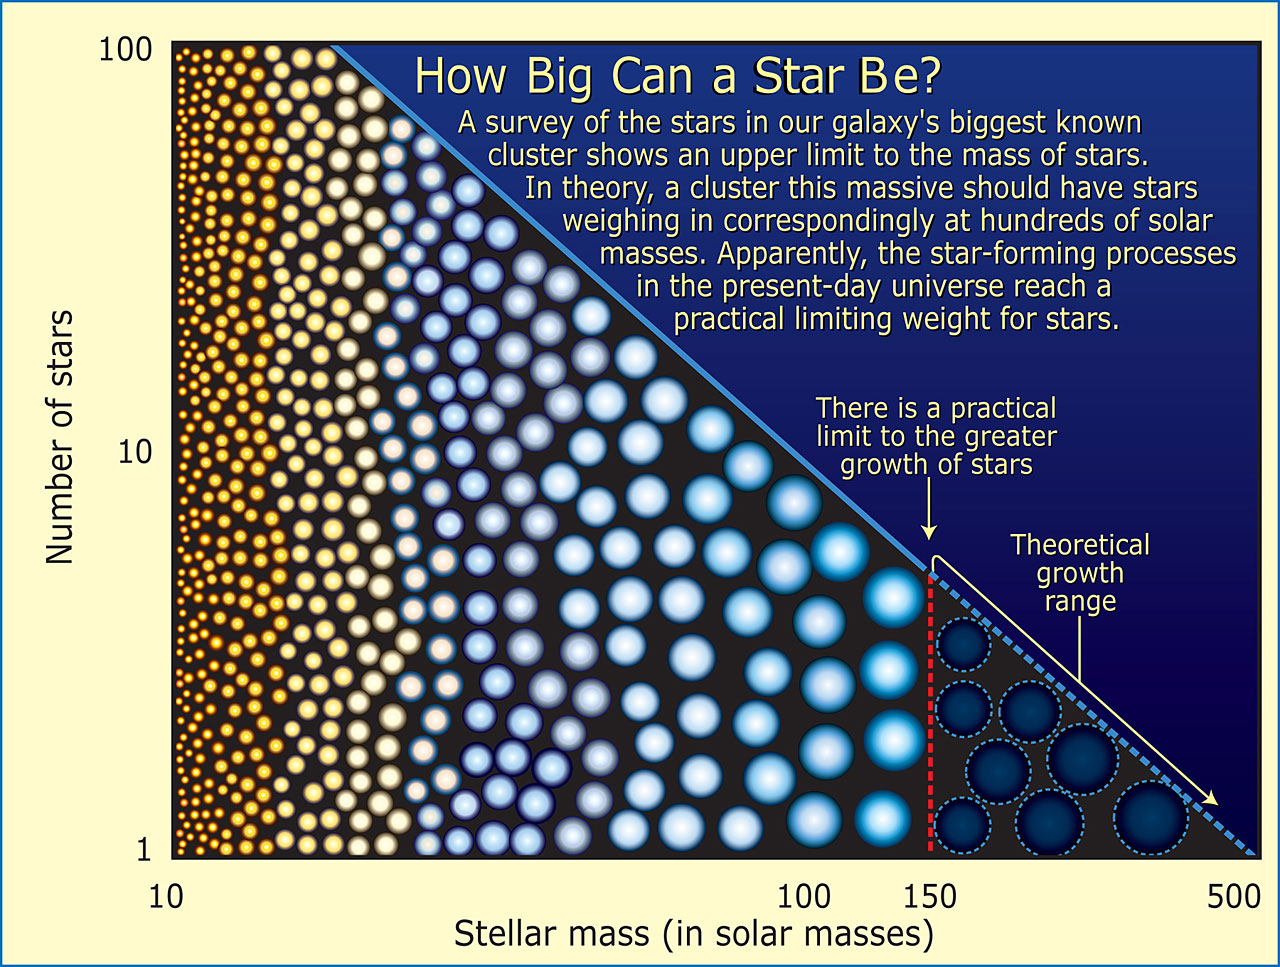 How Big Can a Star Be?